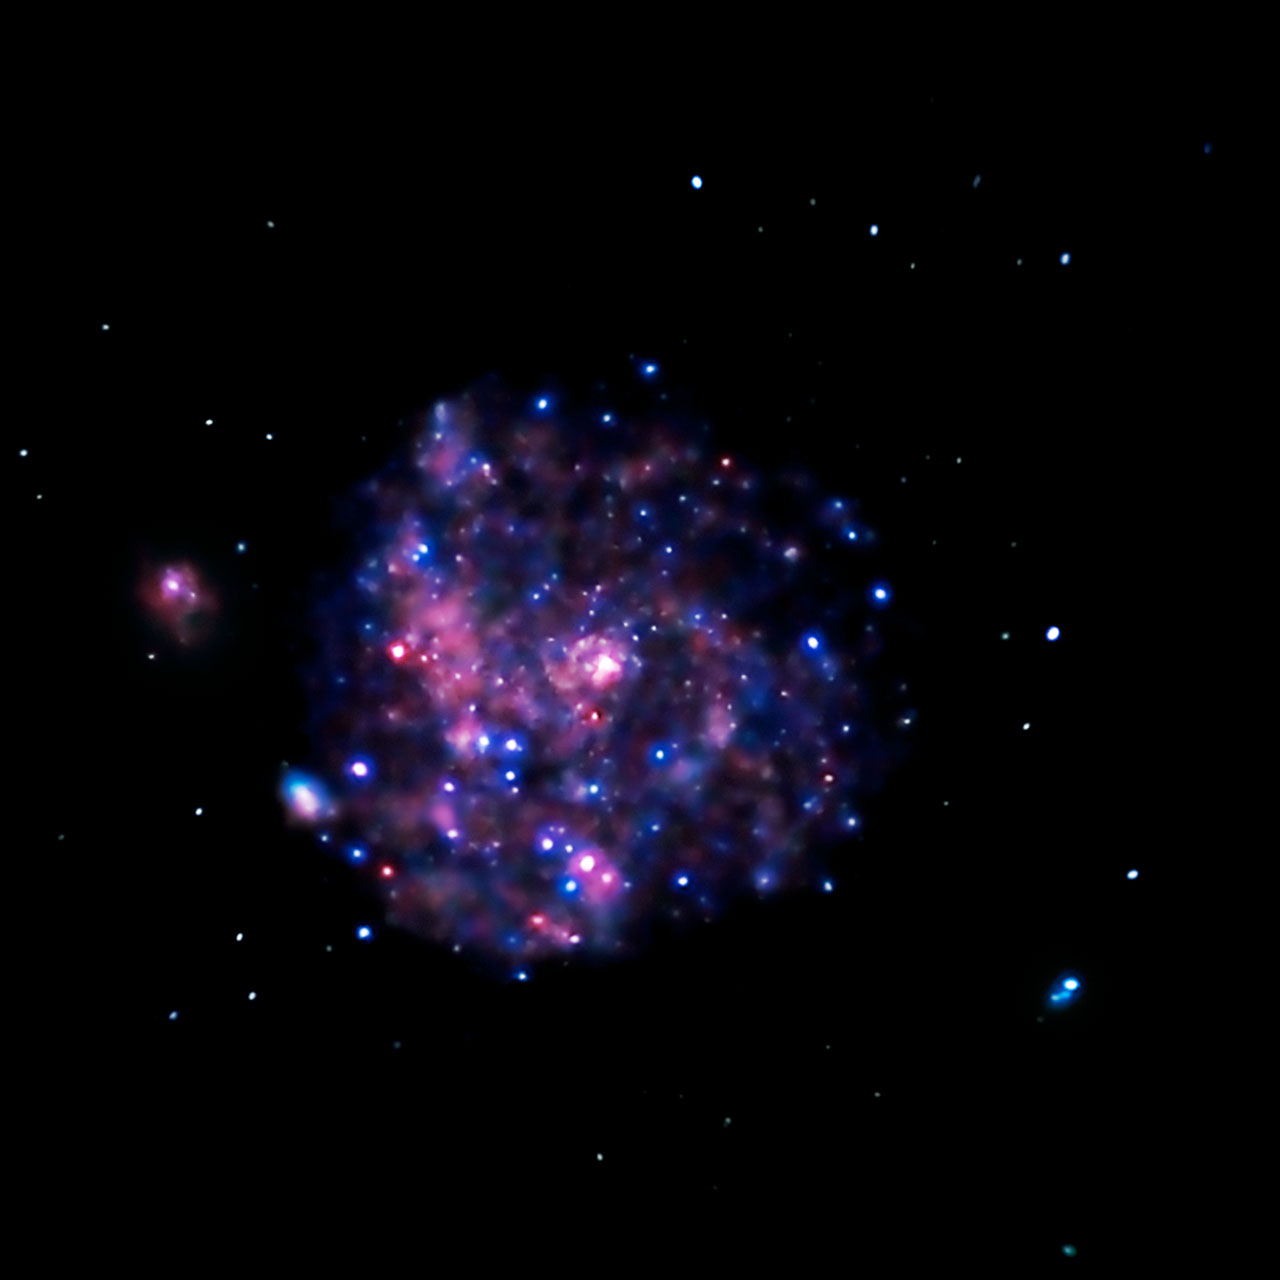 Chandra image of M101